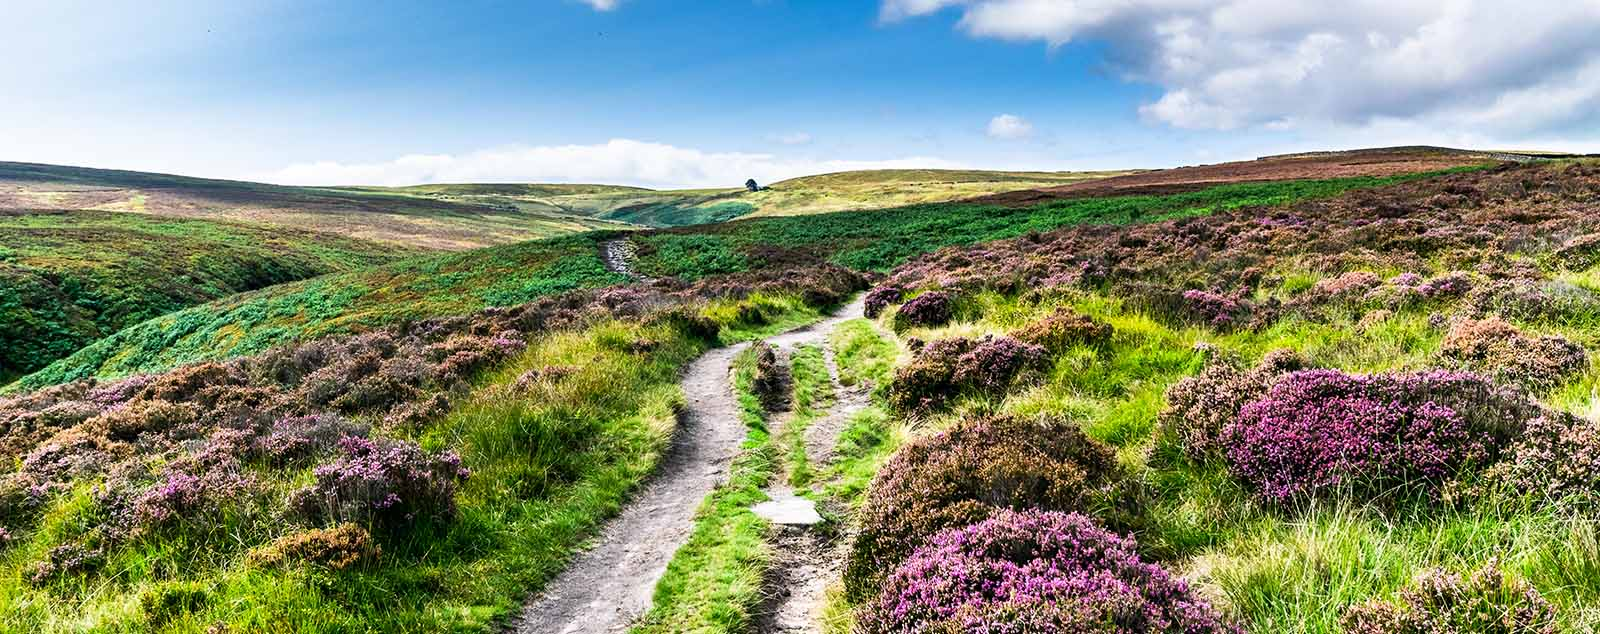 Haworth moor. A small dirt track can be seen through green moss and purple heather